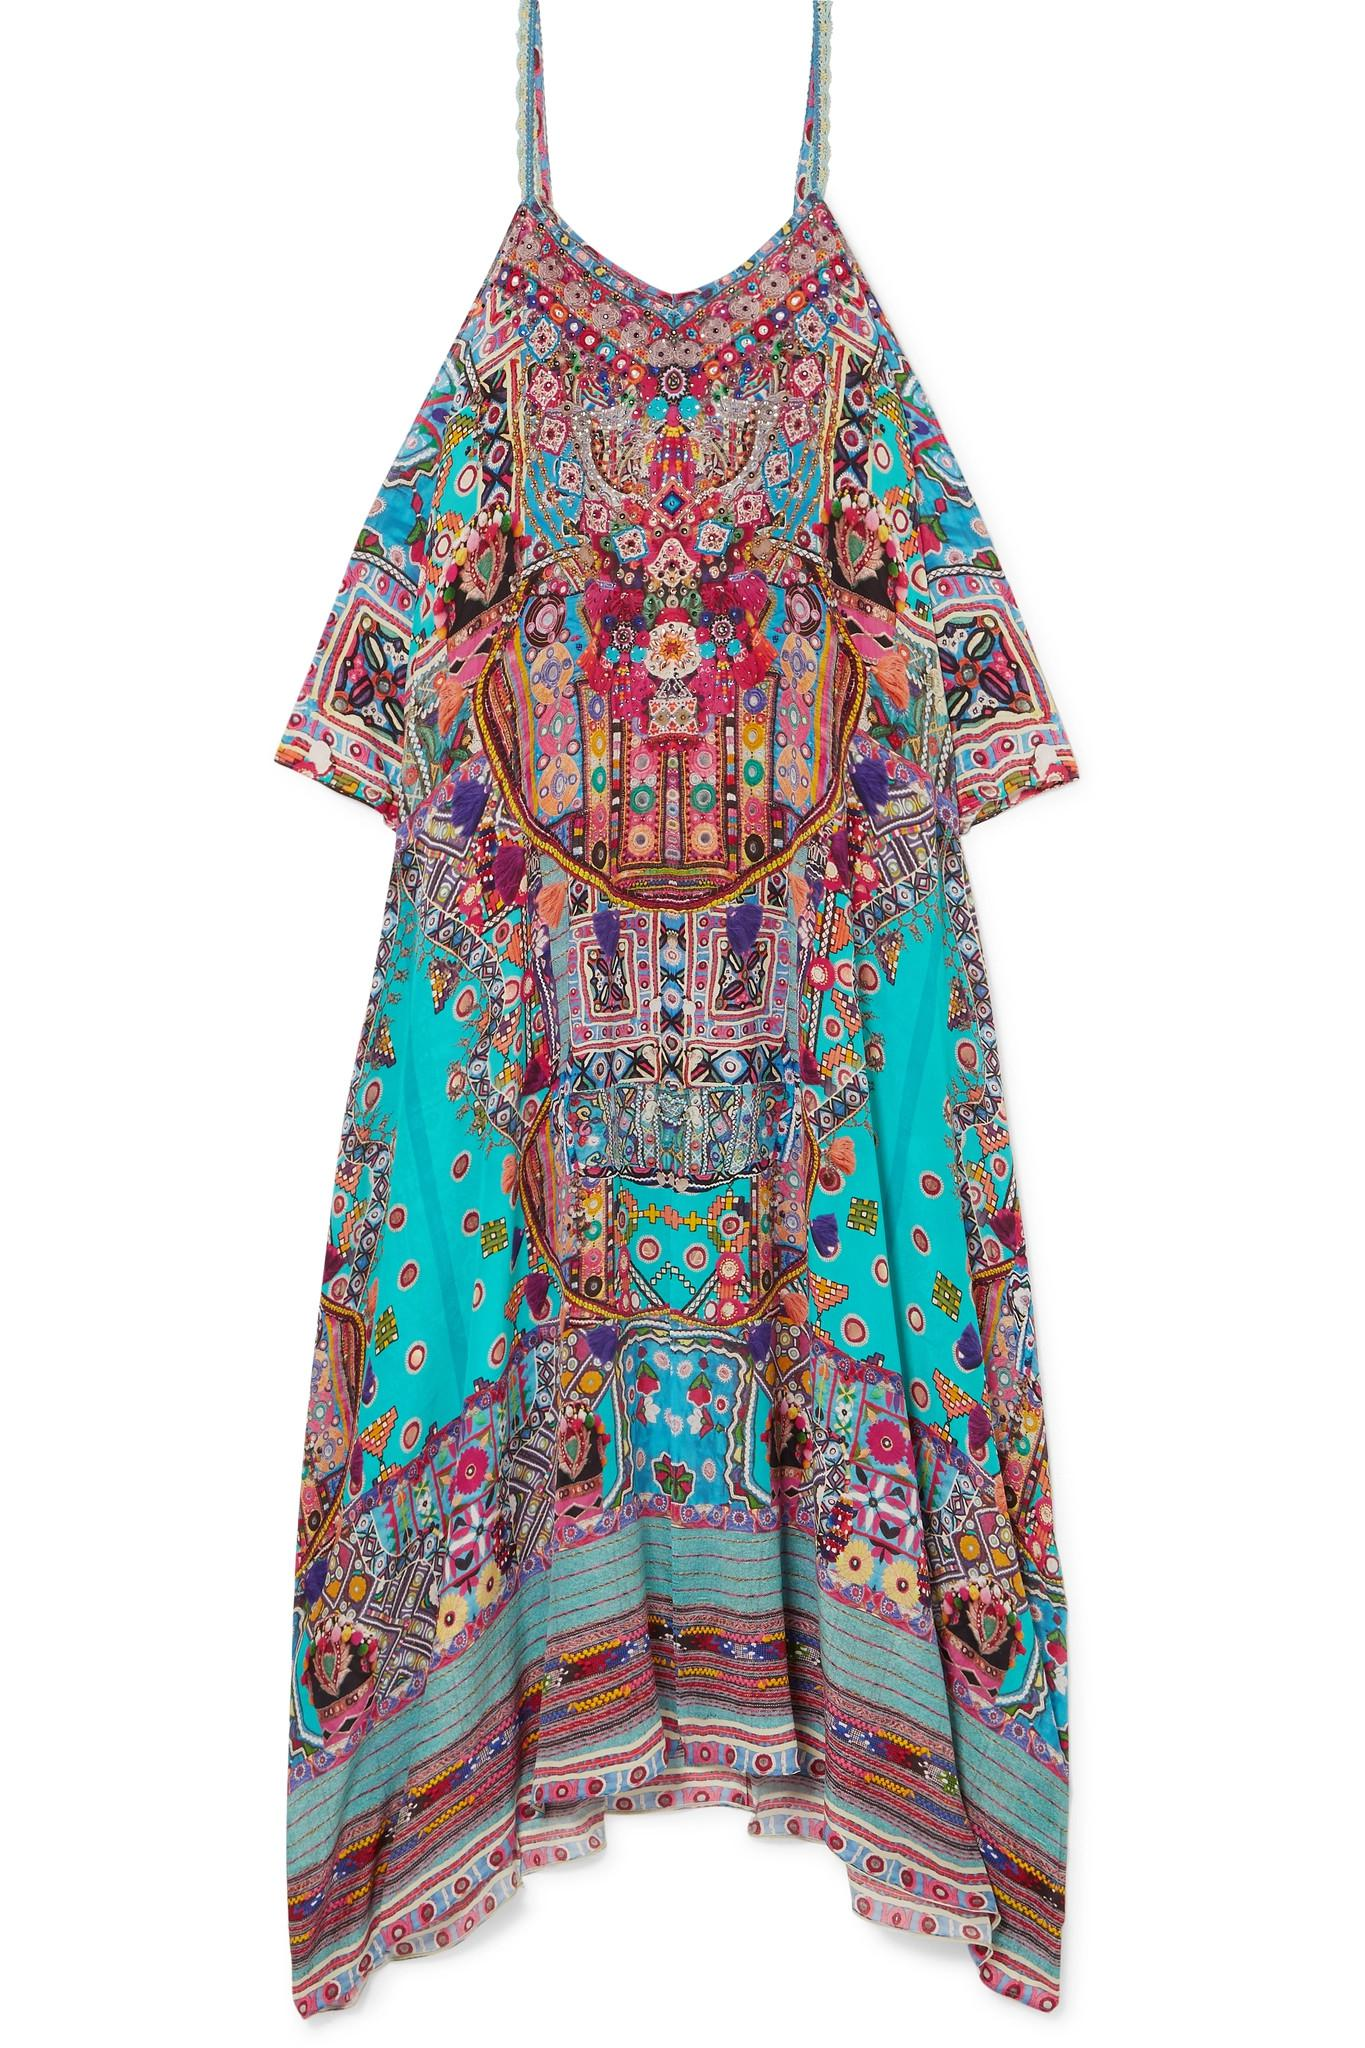 The Long Way Home Embellished Printed Silk Crepe De Chine Kaftan - Brown Camilla With Credit Card Online Shop Offer Cheap Online 9kZExPlJPs